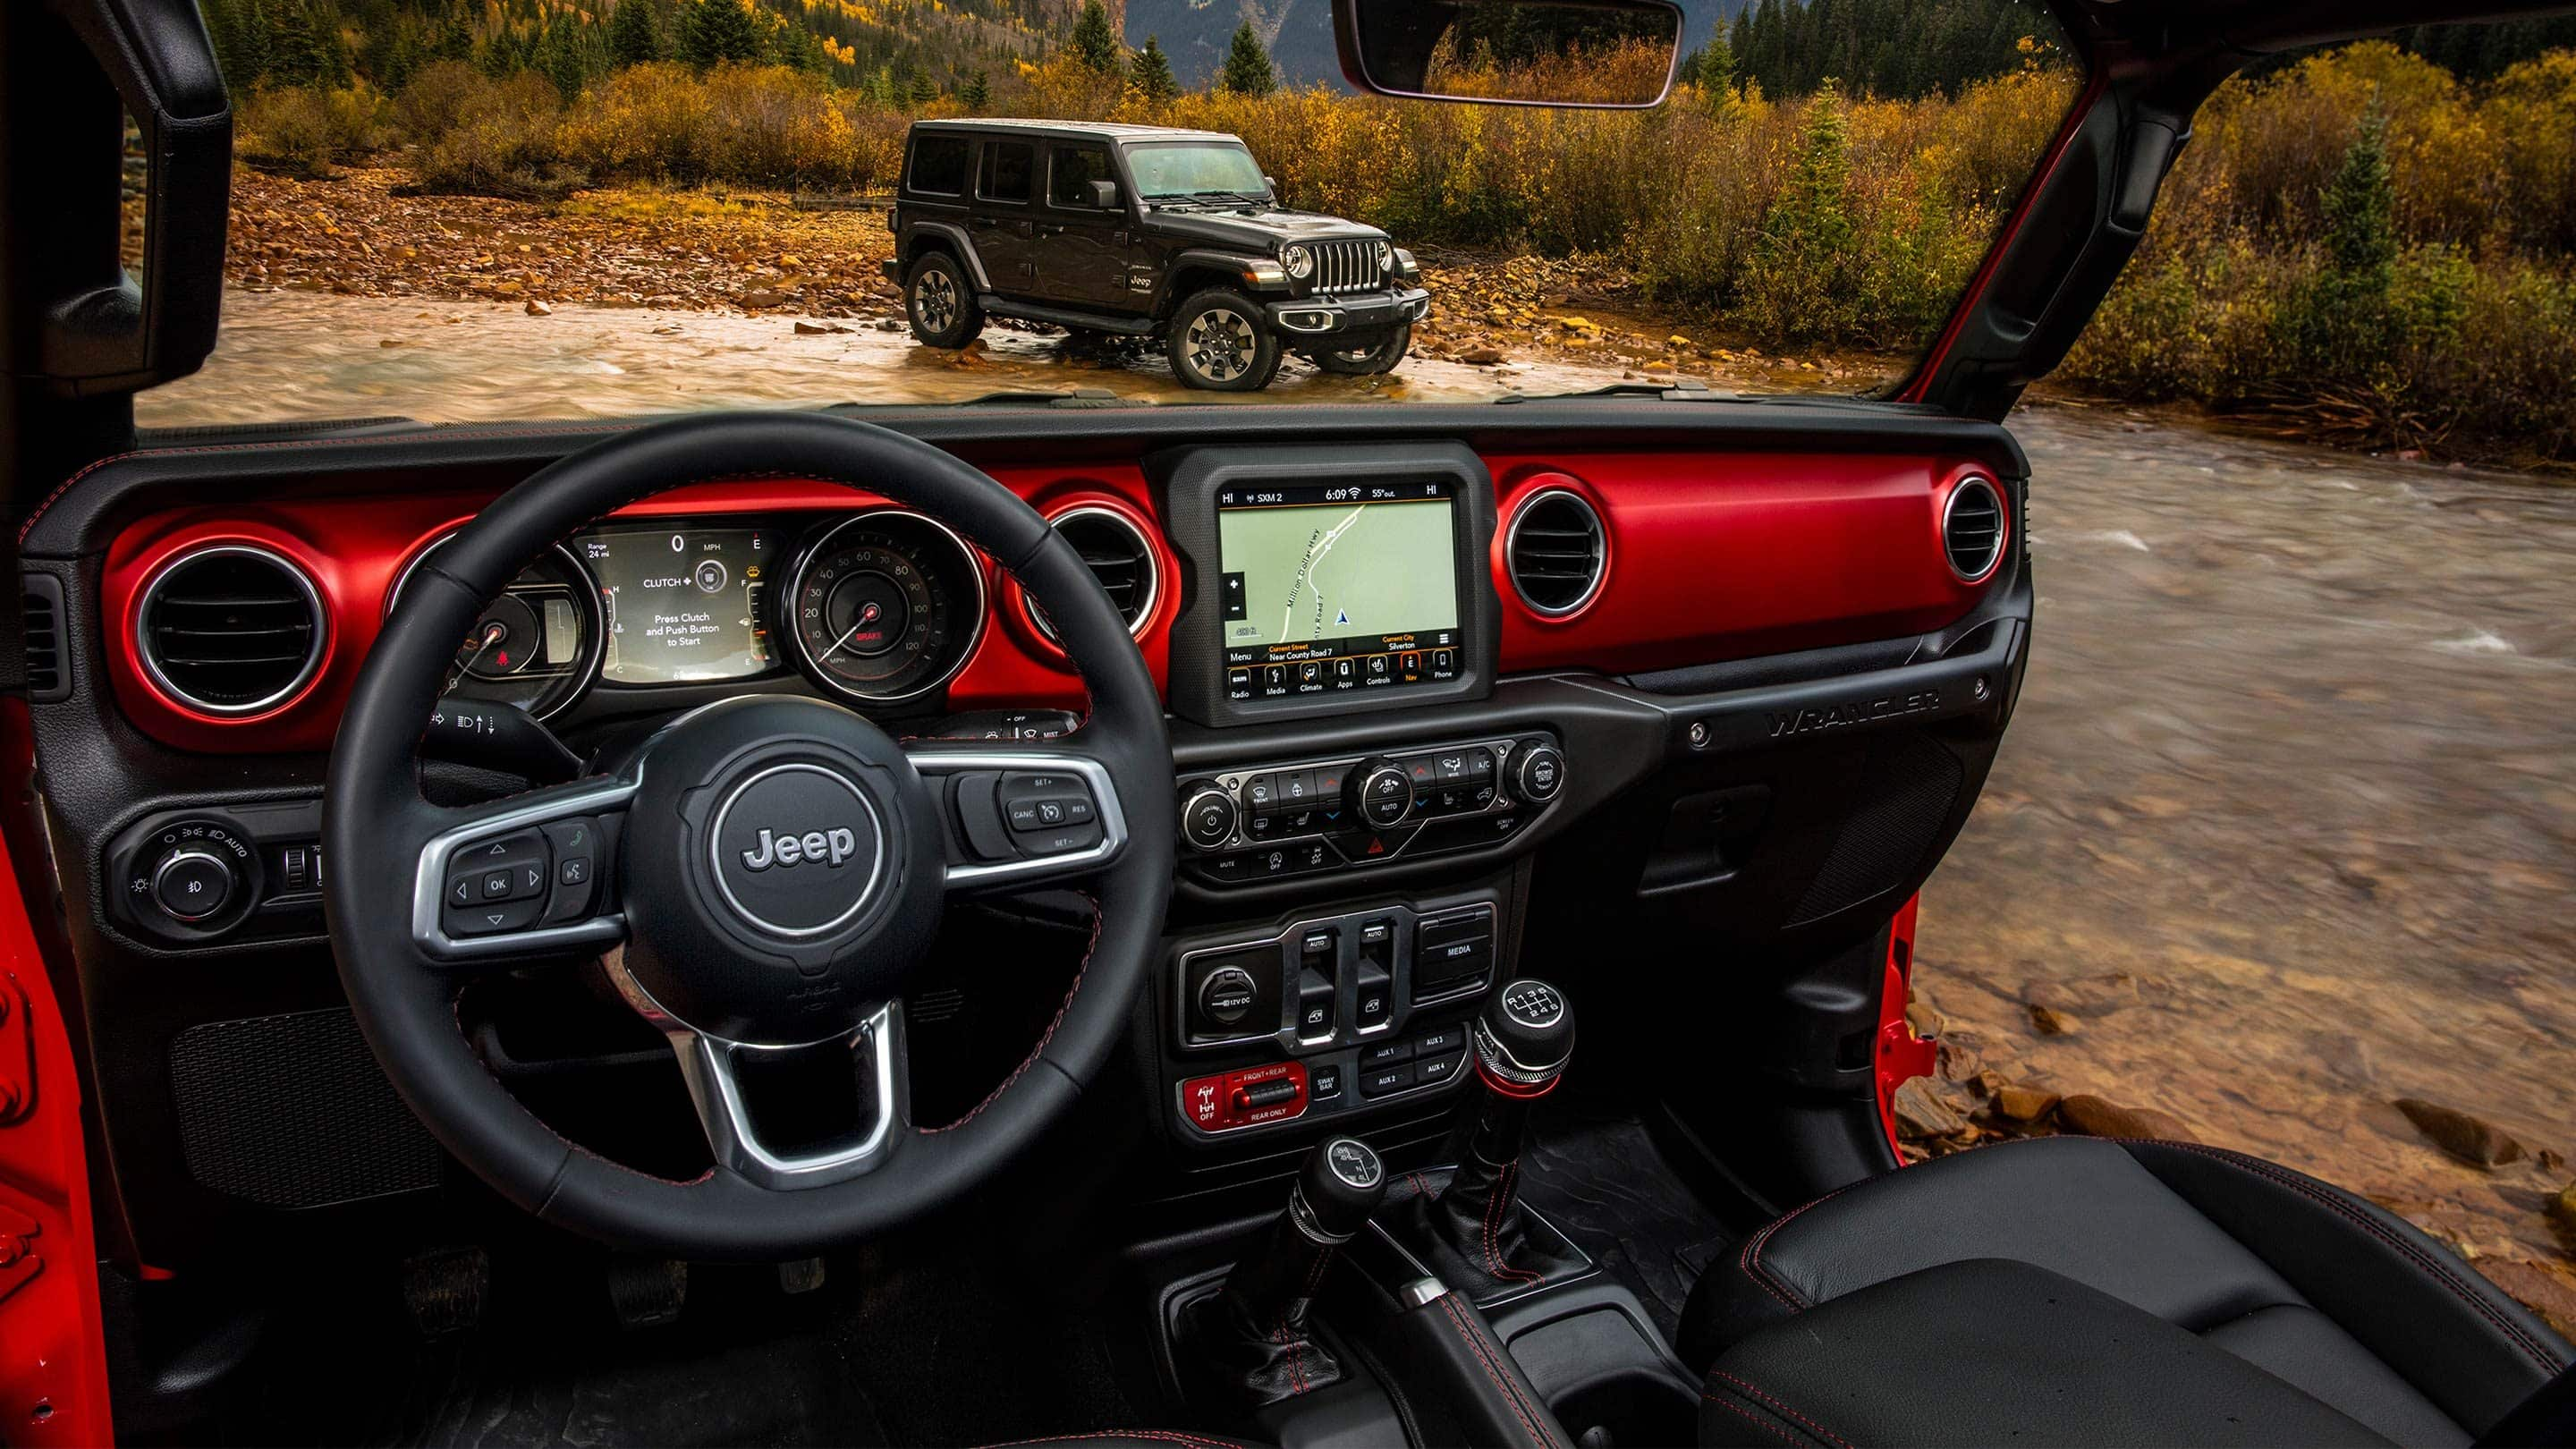 Landmark Dodge Chrysler Jeep Ram Blog 2009 Wrangler Rubicon V6 38 Liter Gas Radiator Components The Testing Staff From Car And Driver Thought That Look On 2018 Is Appropriately Modern Still Rugged Ranked 84 Inch Touchscreen As Easy